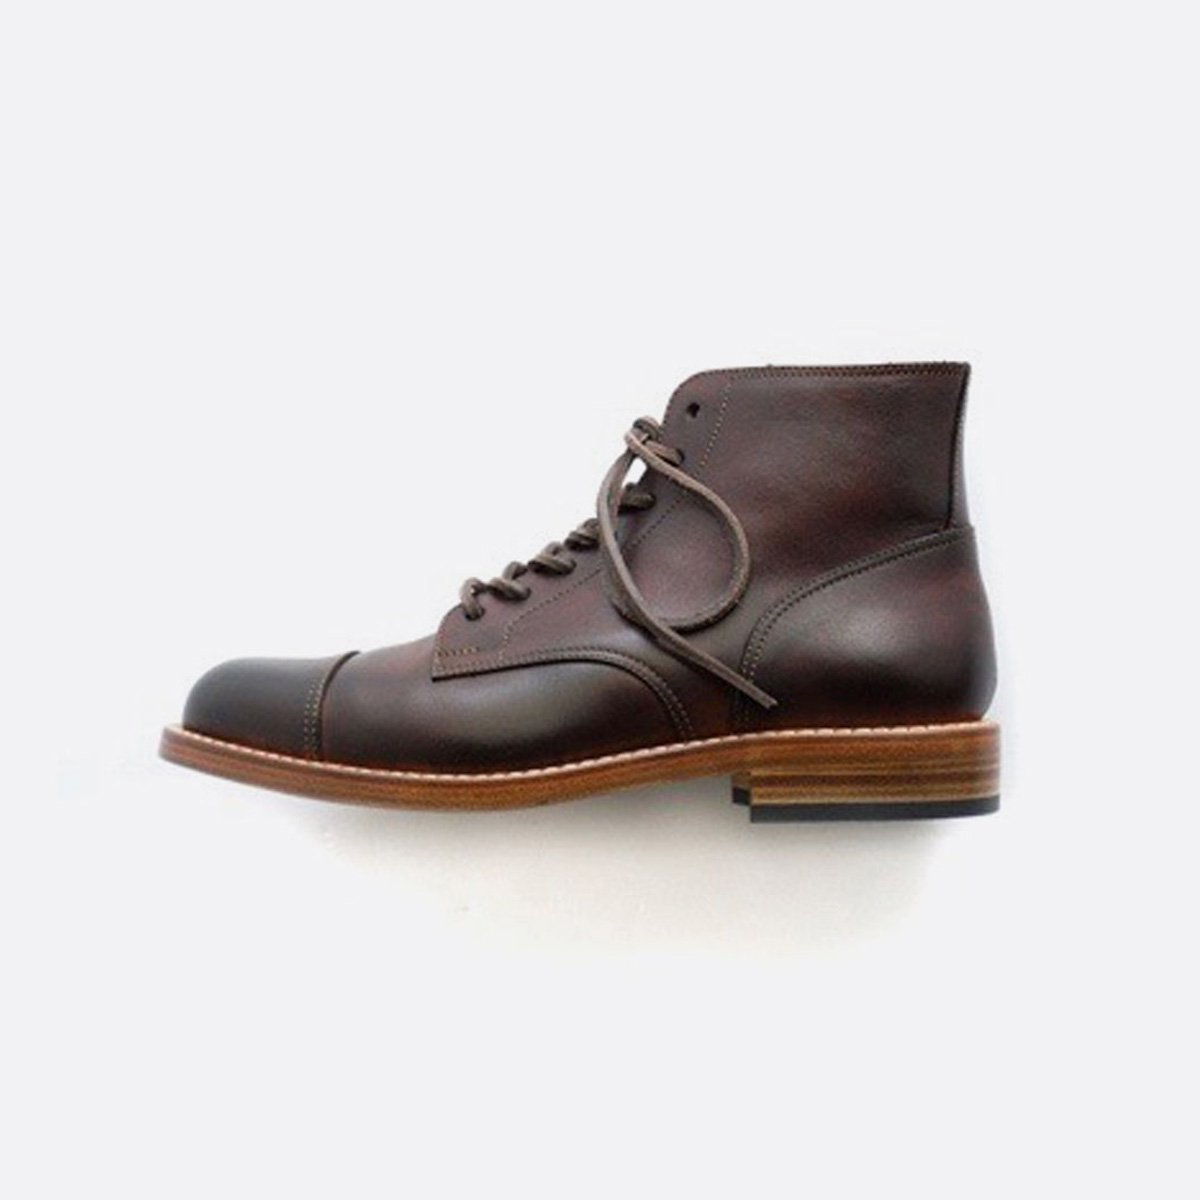 MOTO STRAIGHT TIP Lace-up BOOTS #1500 (BROWN)